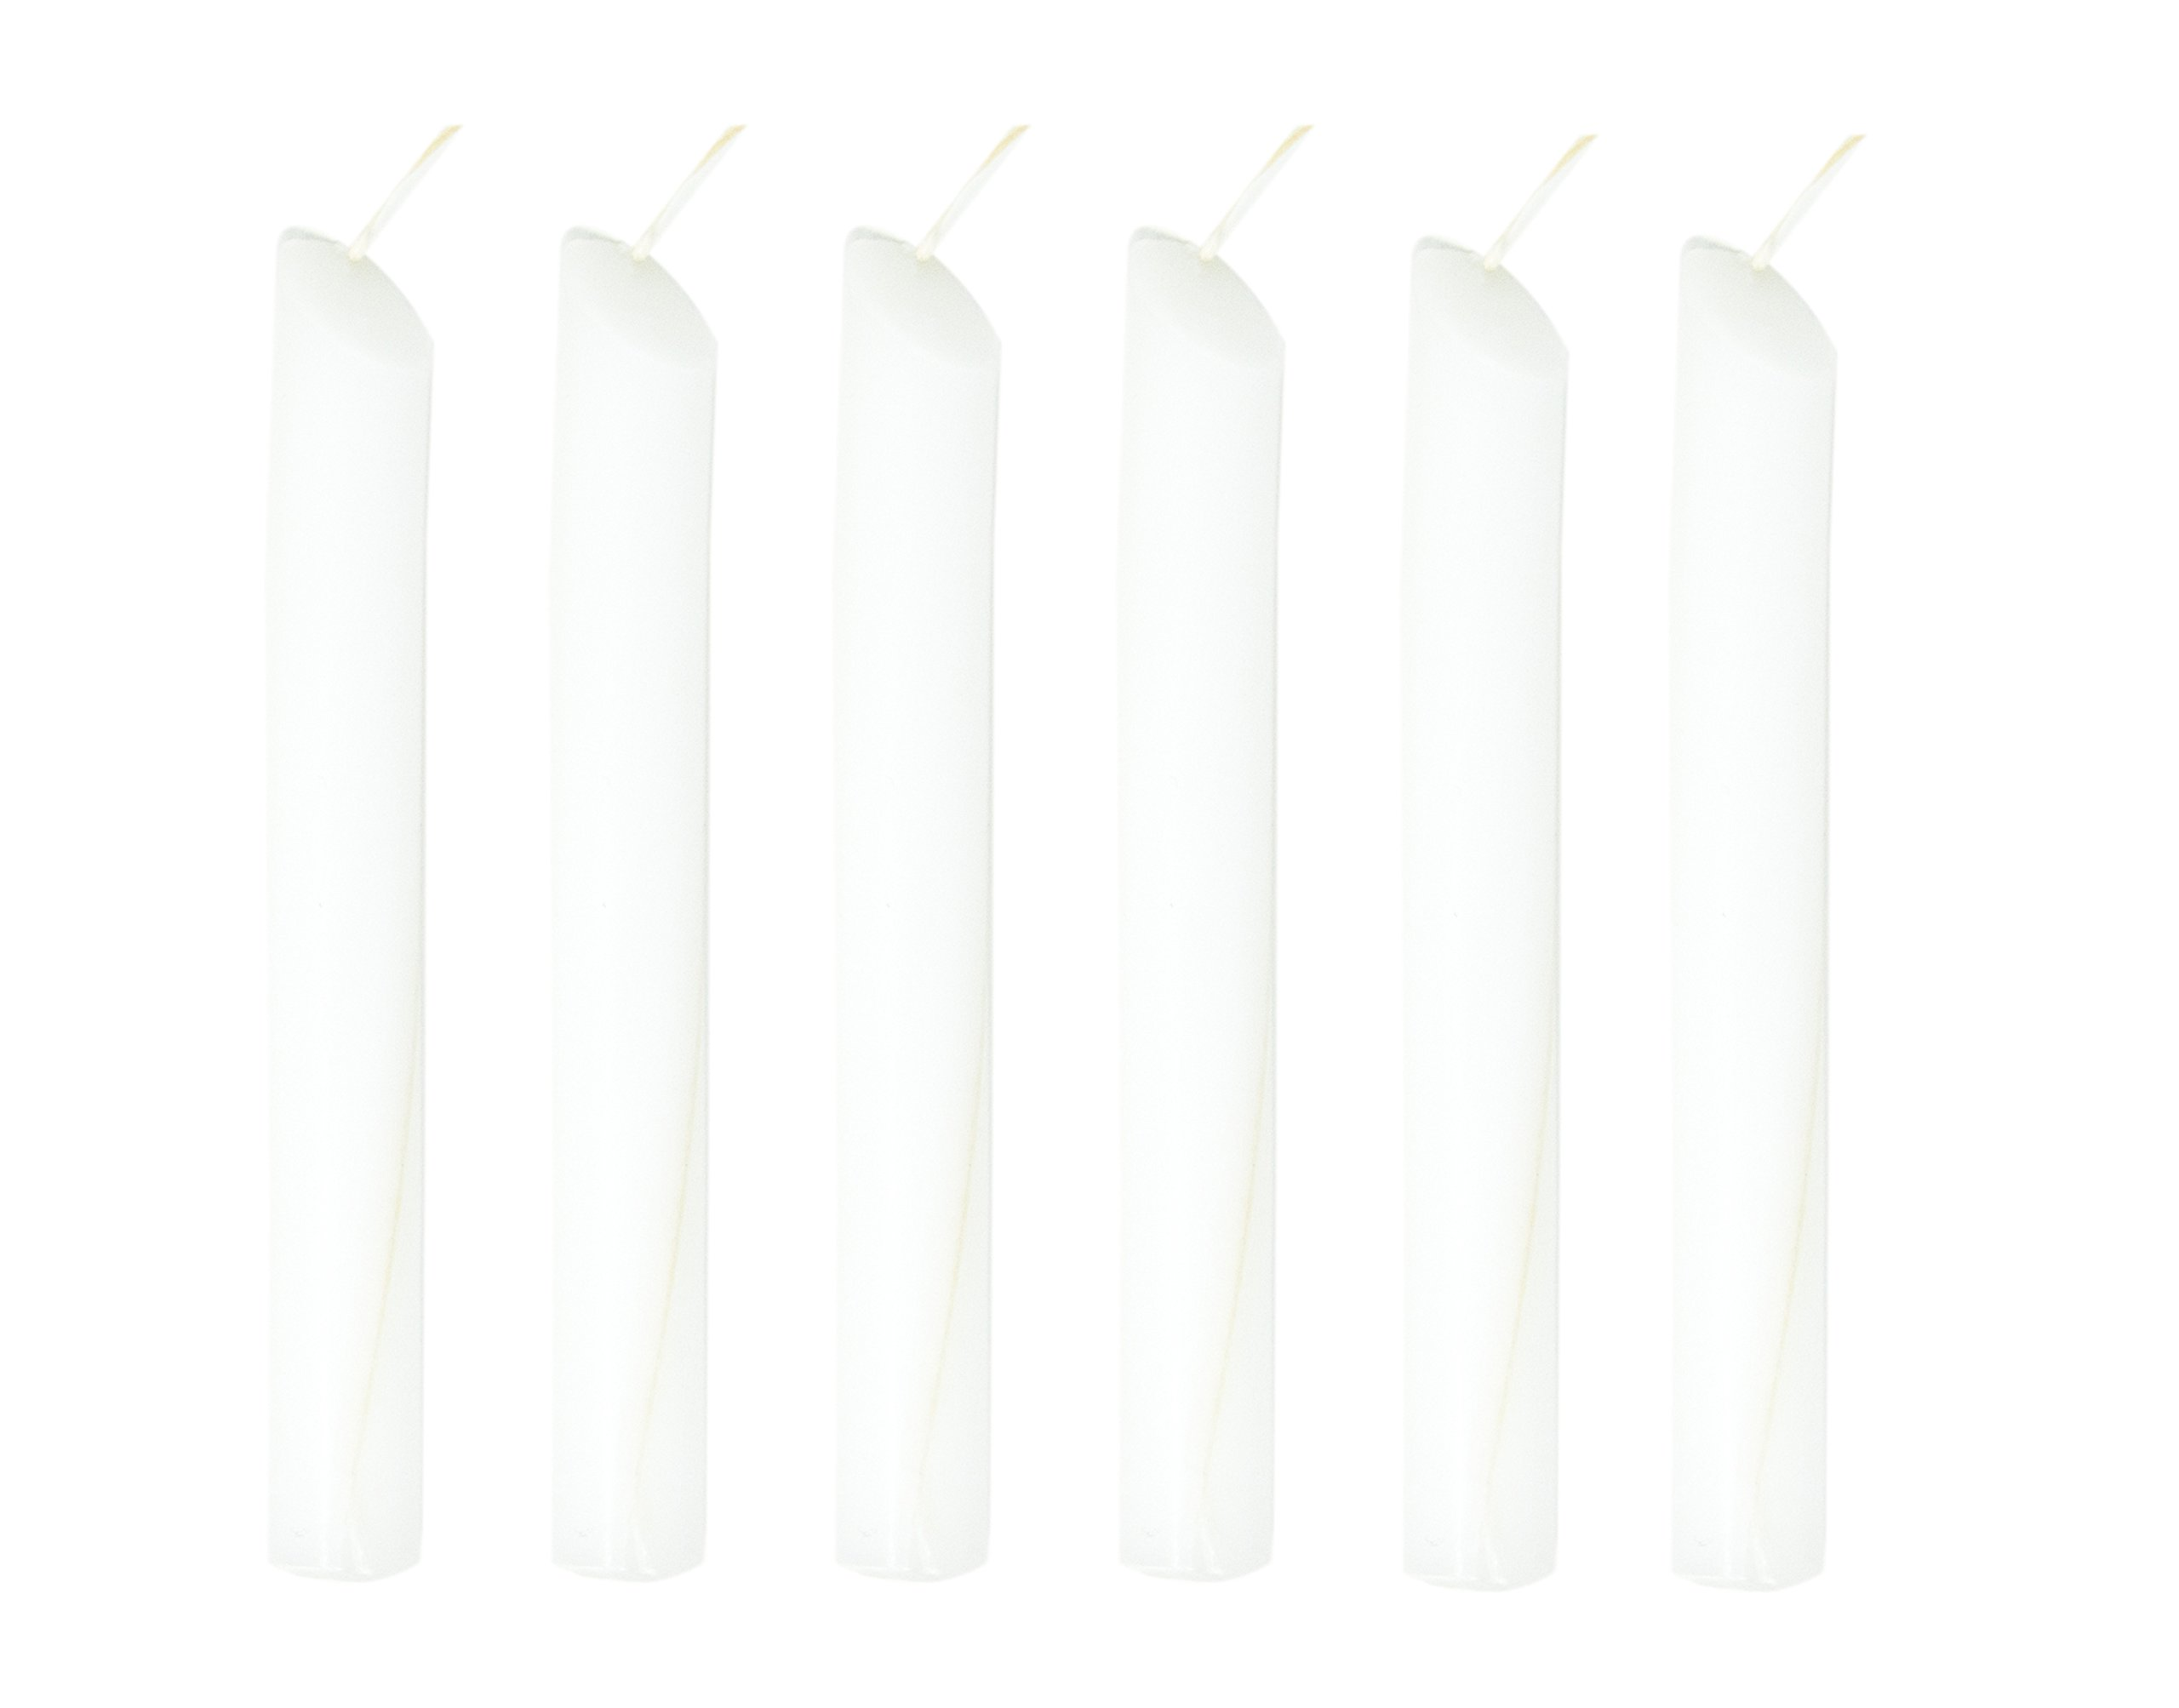 Drip Candle Solid Color Dripping Candle 6 Pack (White)